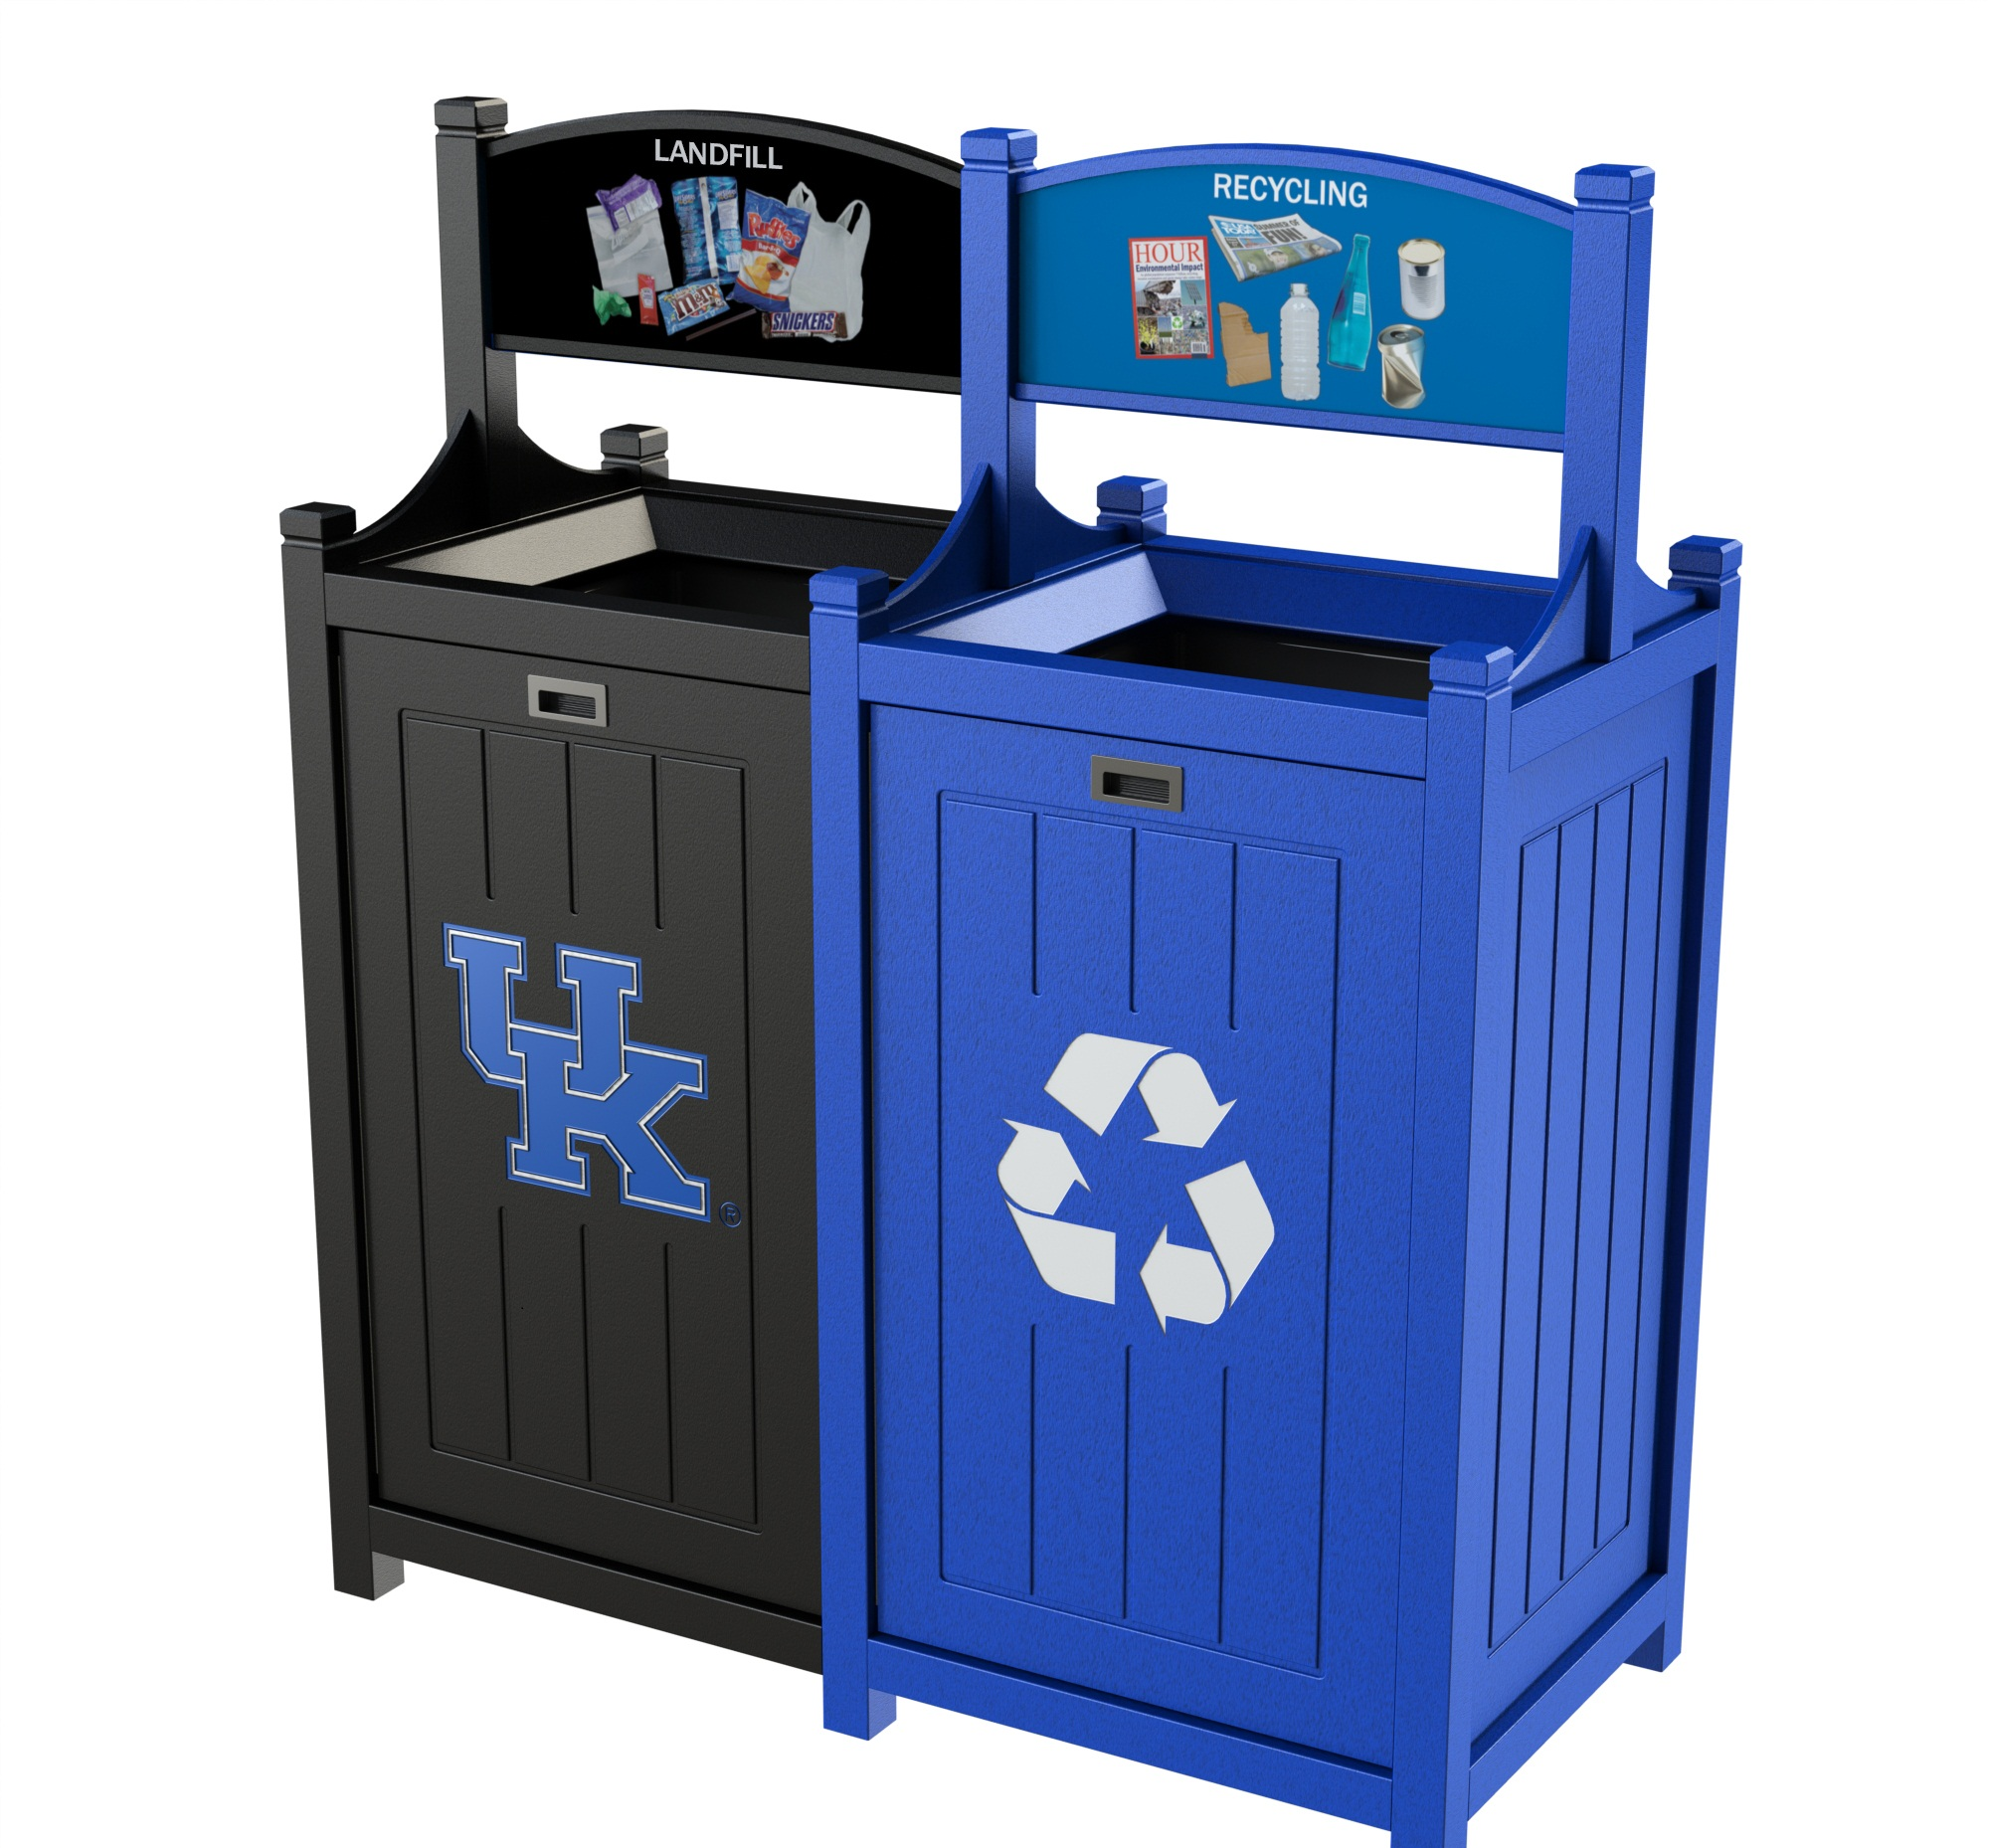 Stadium Bin Recycling And Waste Containers Cleanriver